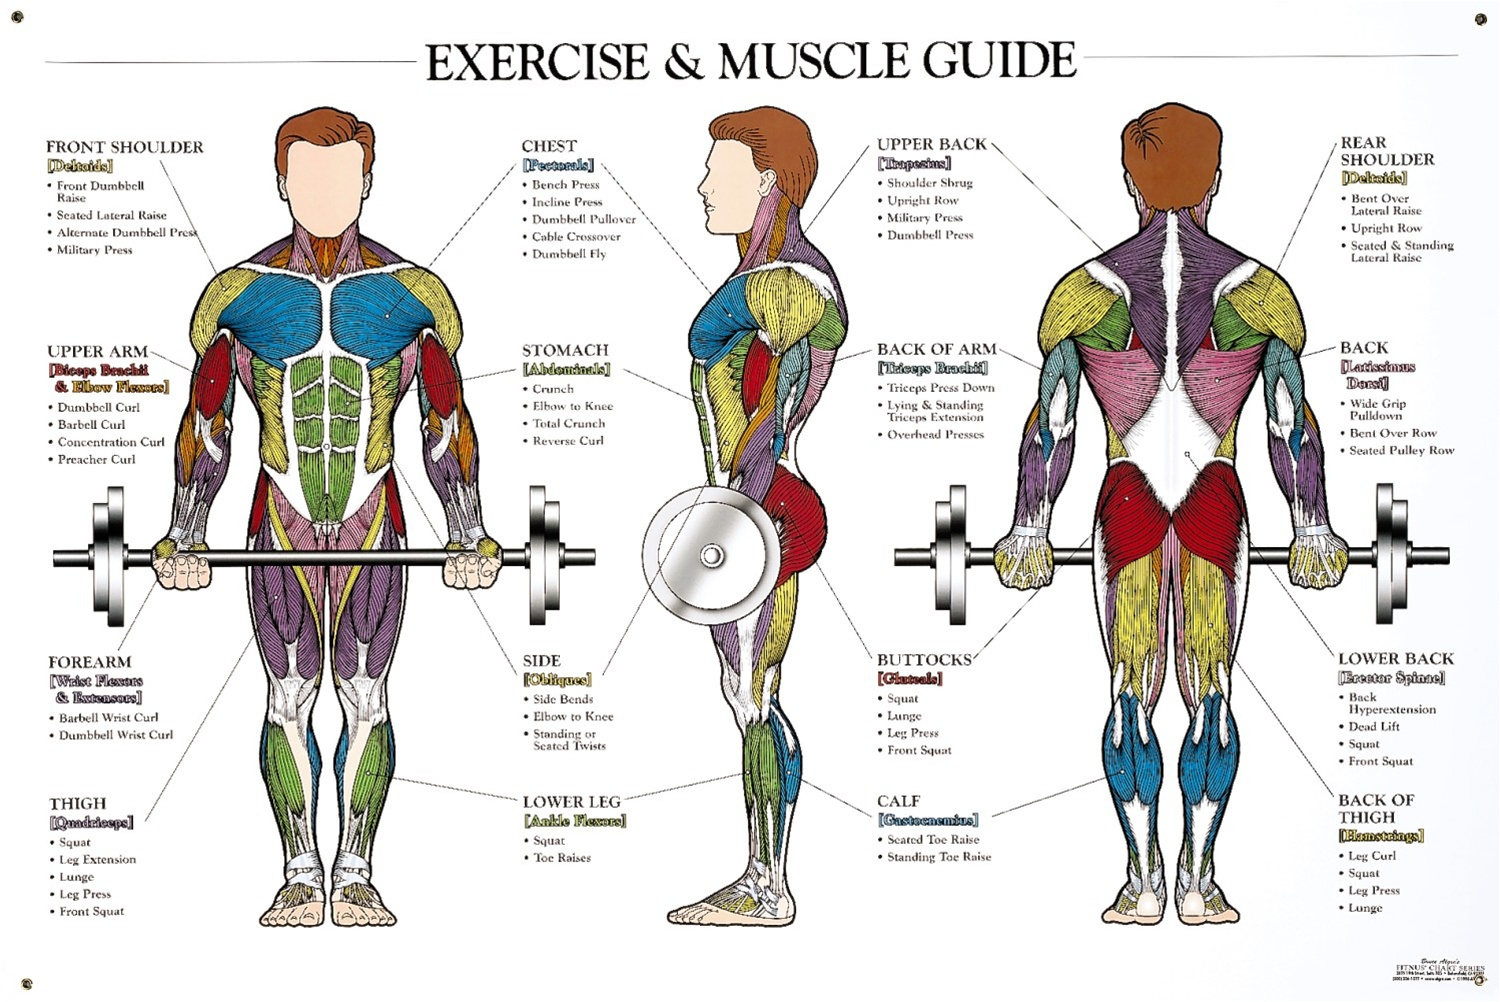 10 Best Back Muscles Images On Pinterest Manual Guide